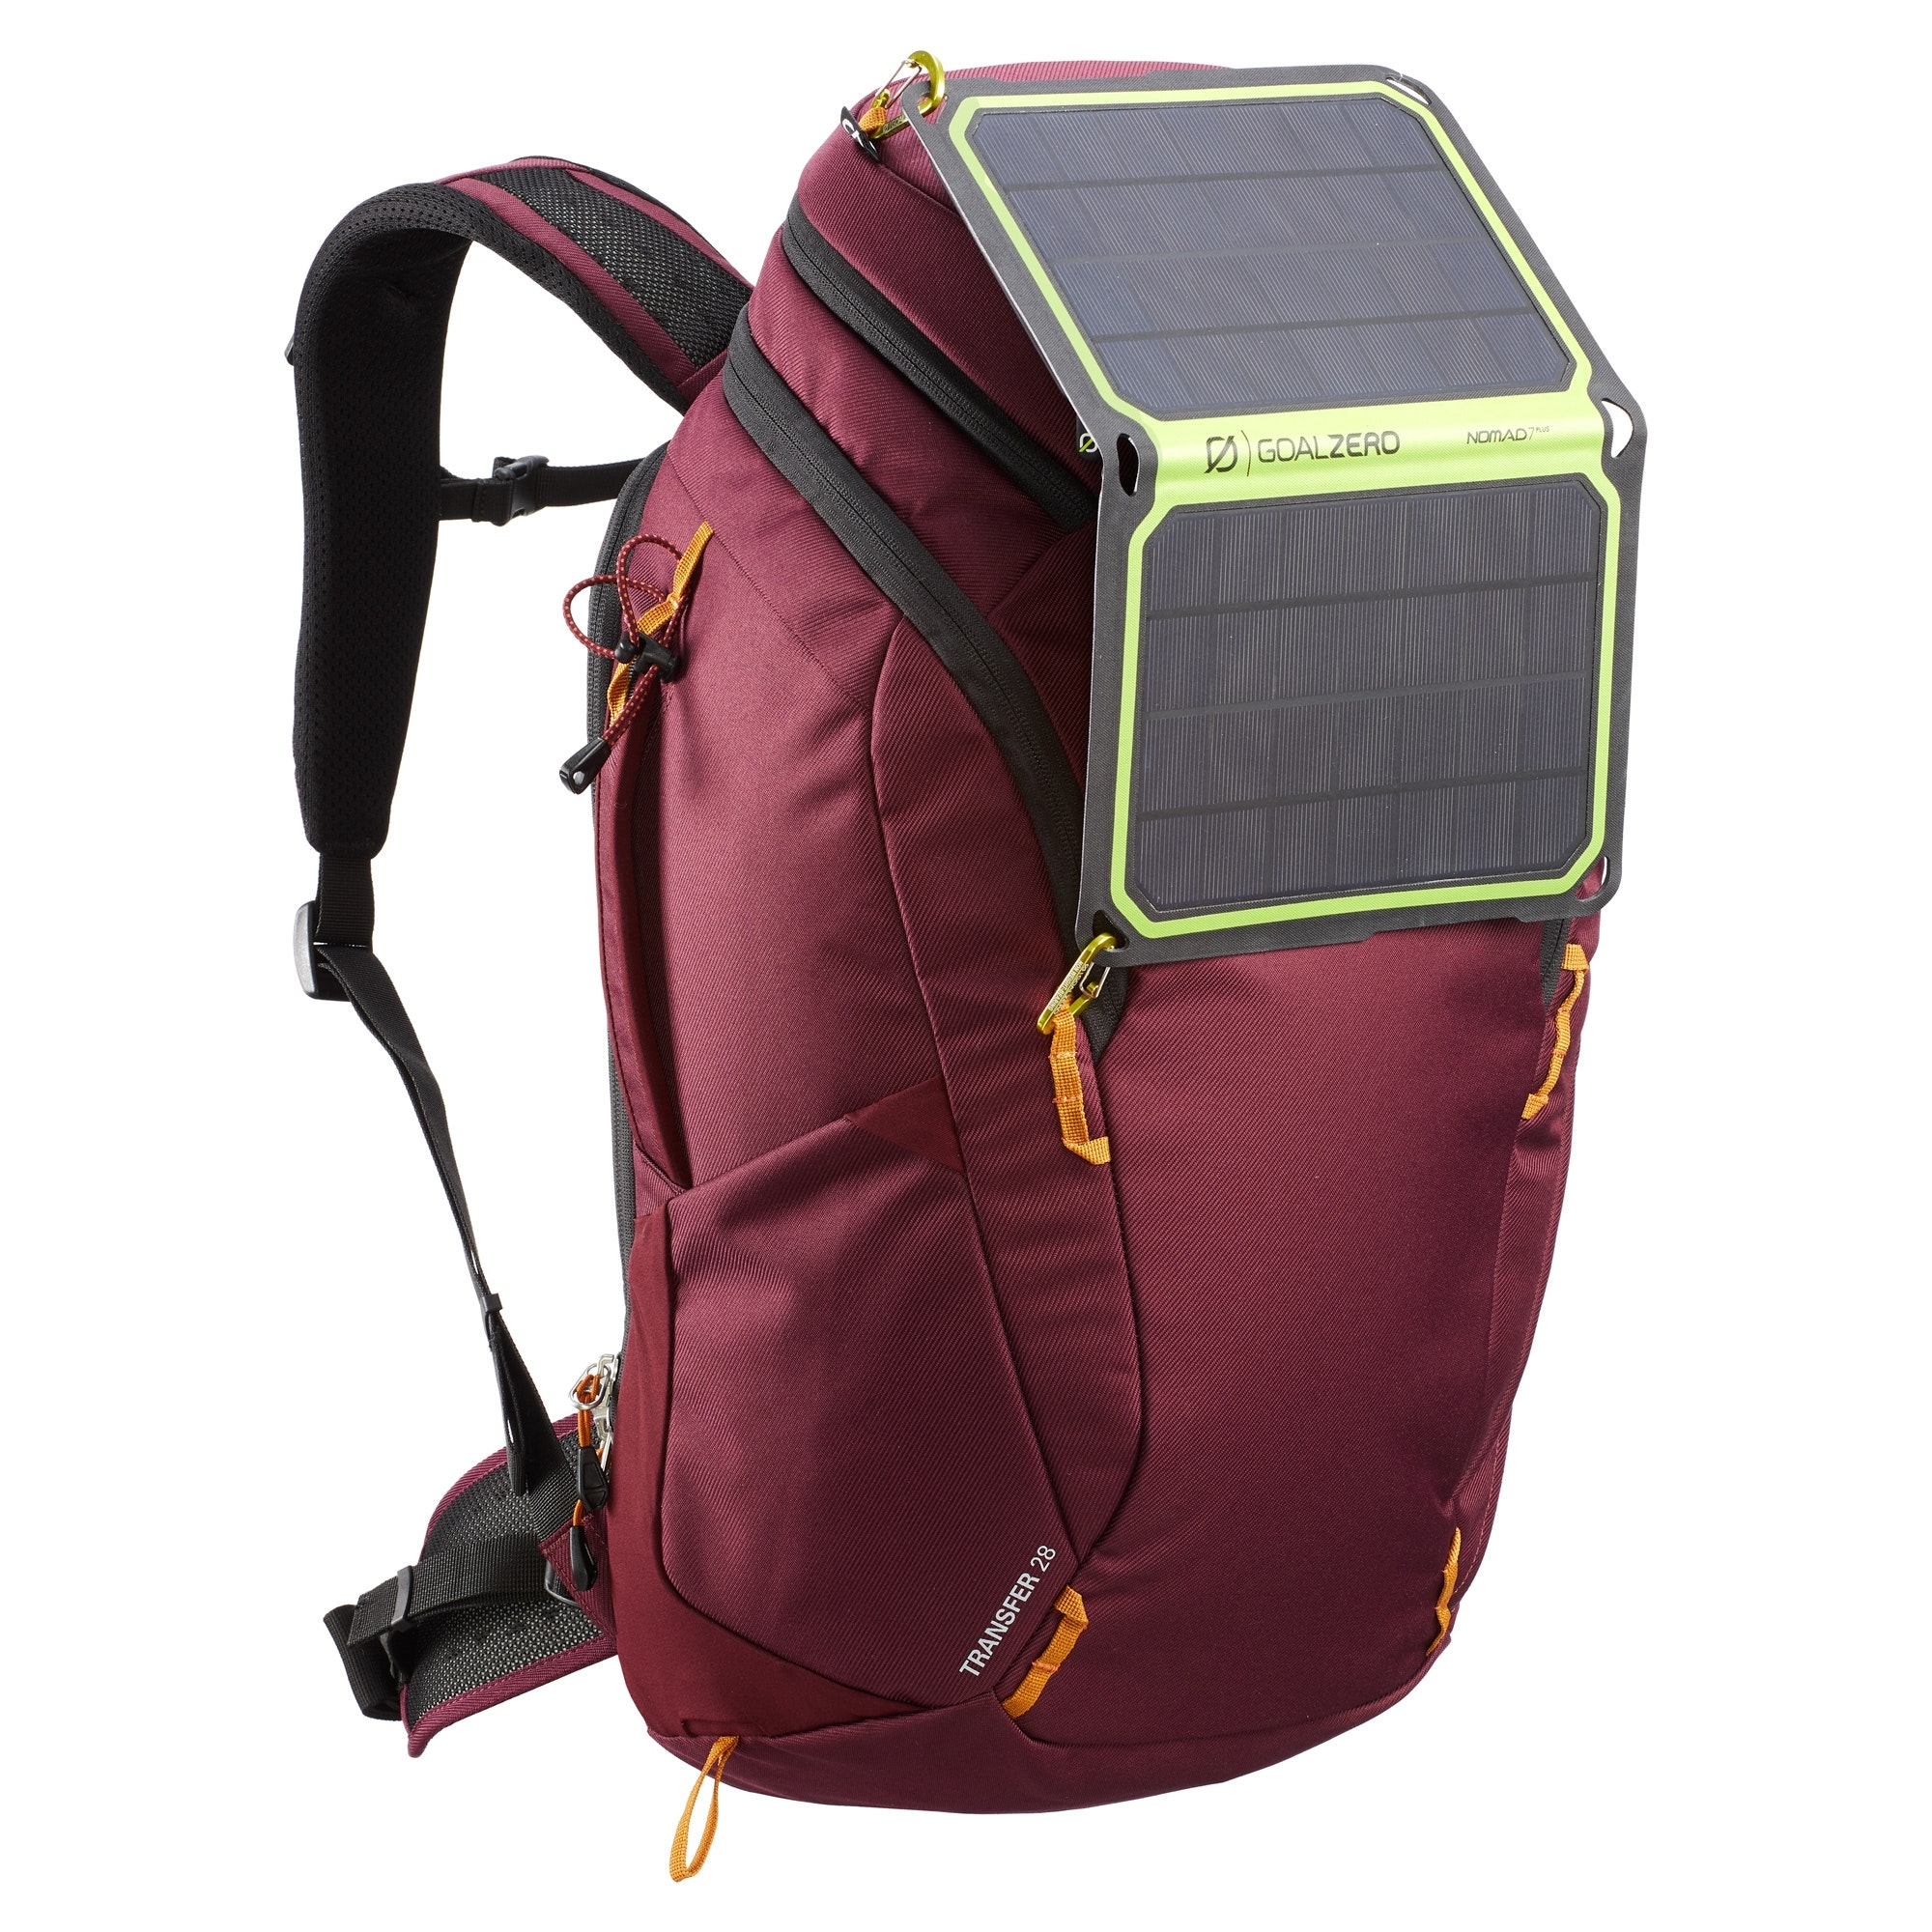 NEW-Kathmandu-Transfer-28L-Commuter-Bag-Laptop-Backpack-Rucksack-Travel-Pack-v3 thumbnail 30